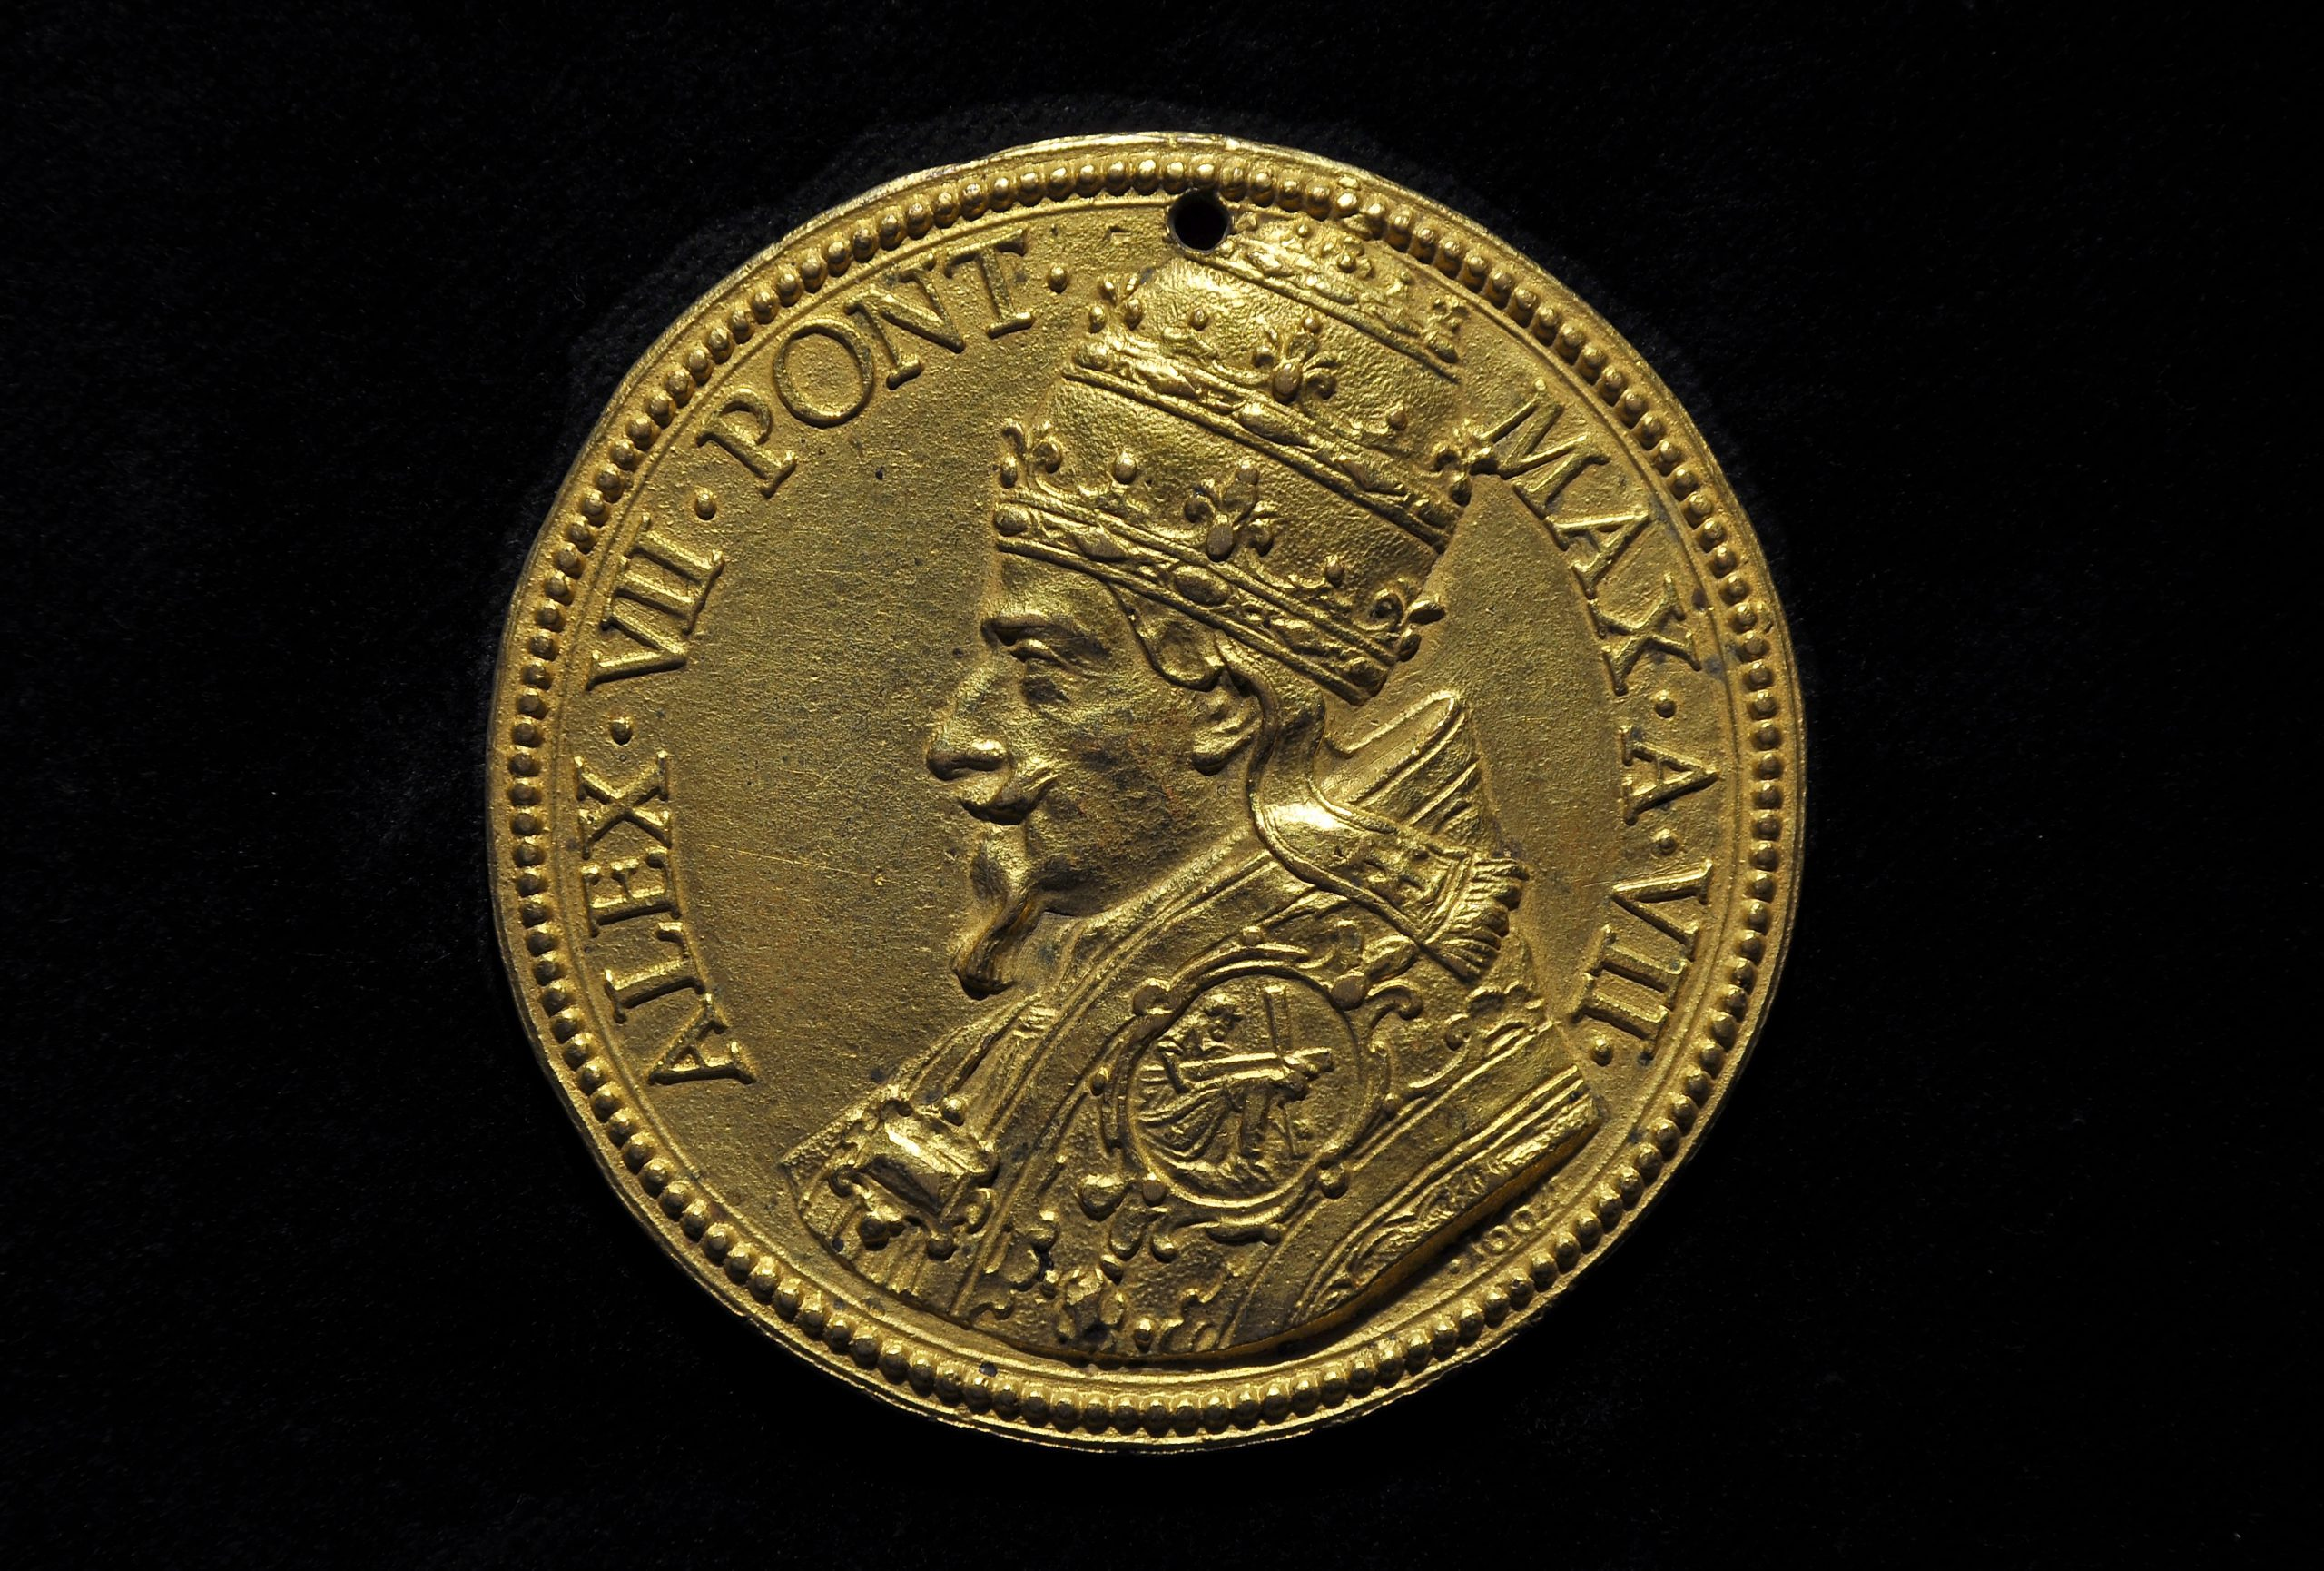 A 17th-century papal figure, in profile, adorns a gold coin.